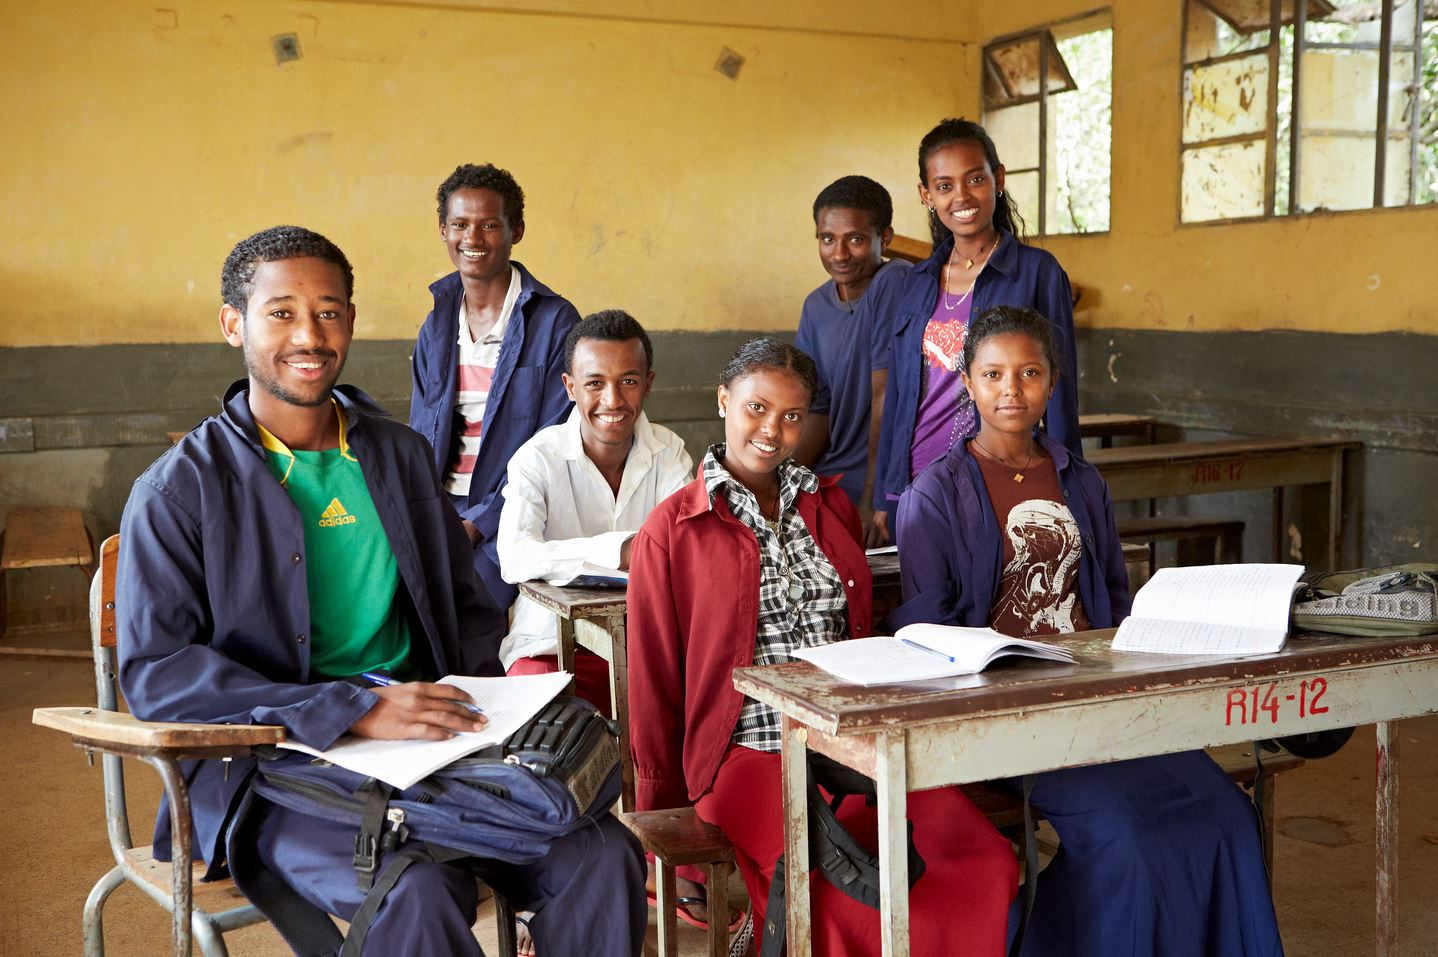 Youth supported by SOS Children's Villages in classroom in Bahir Dar, Ethiopia